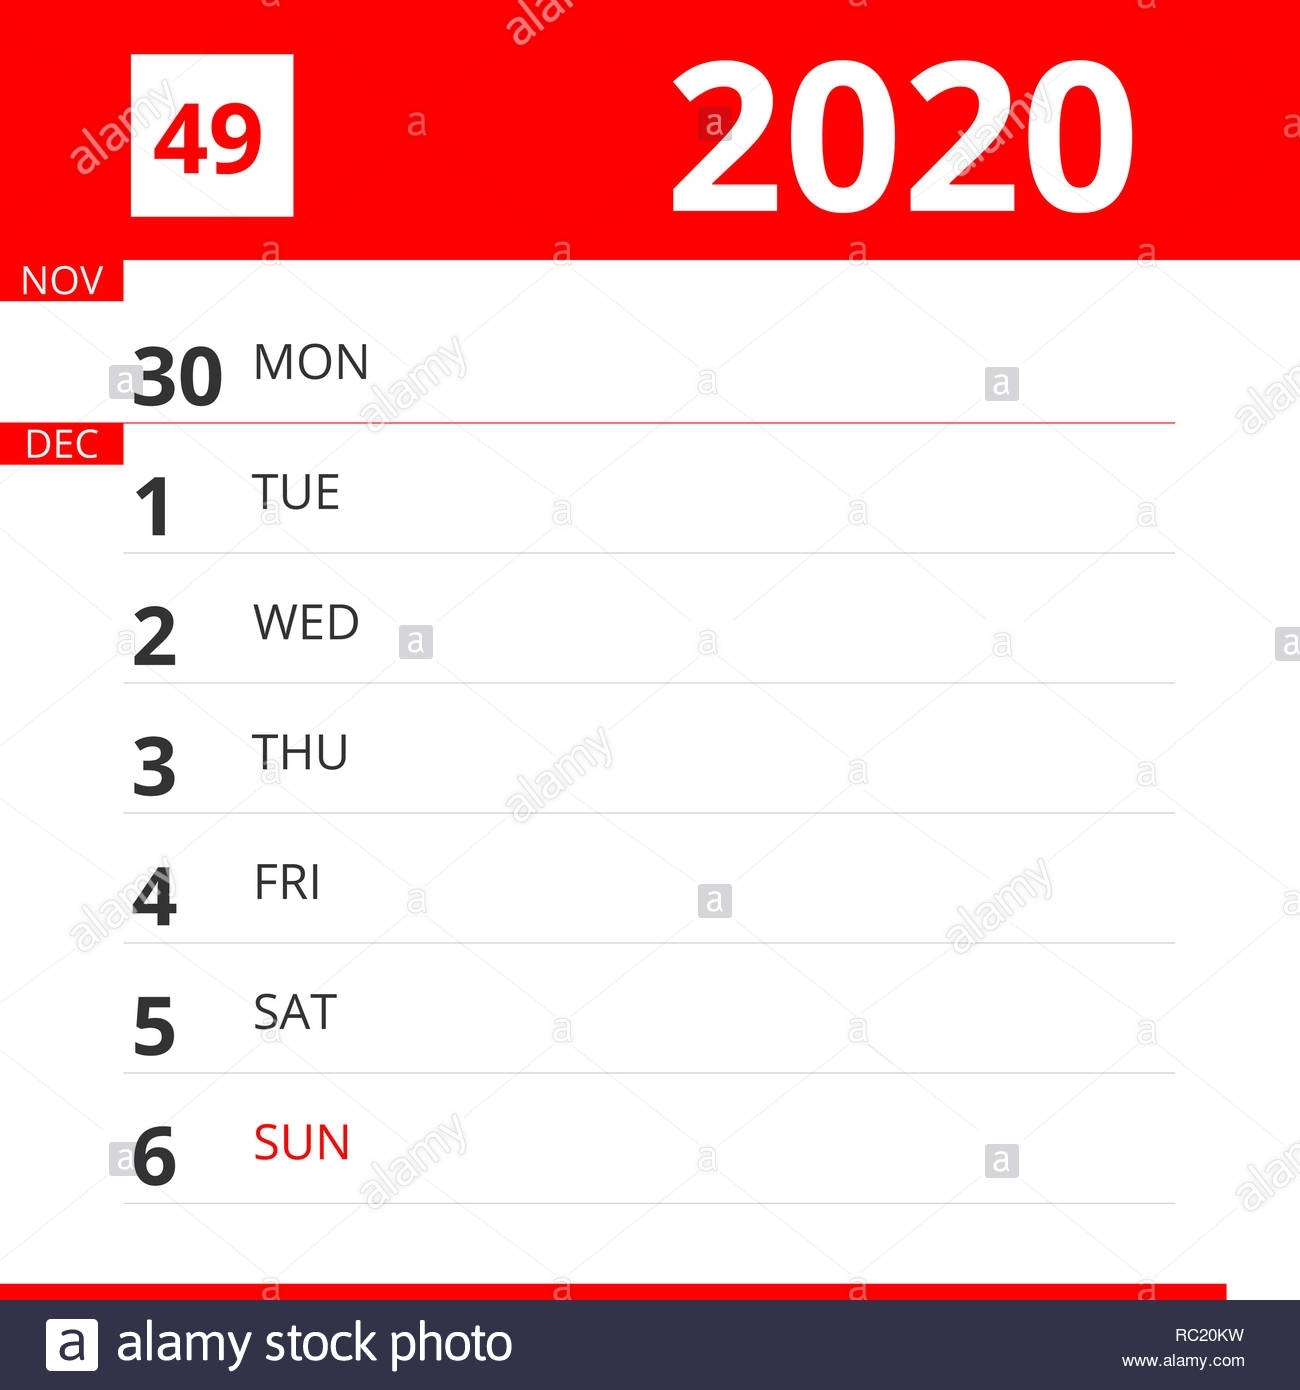 Calendar Planner For Week 49 In 2020, Ends December 6, 2020